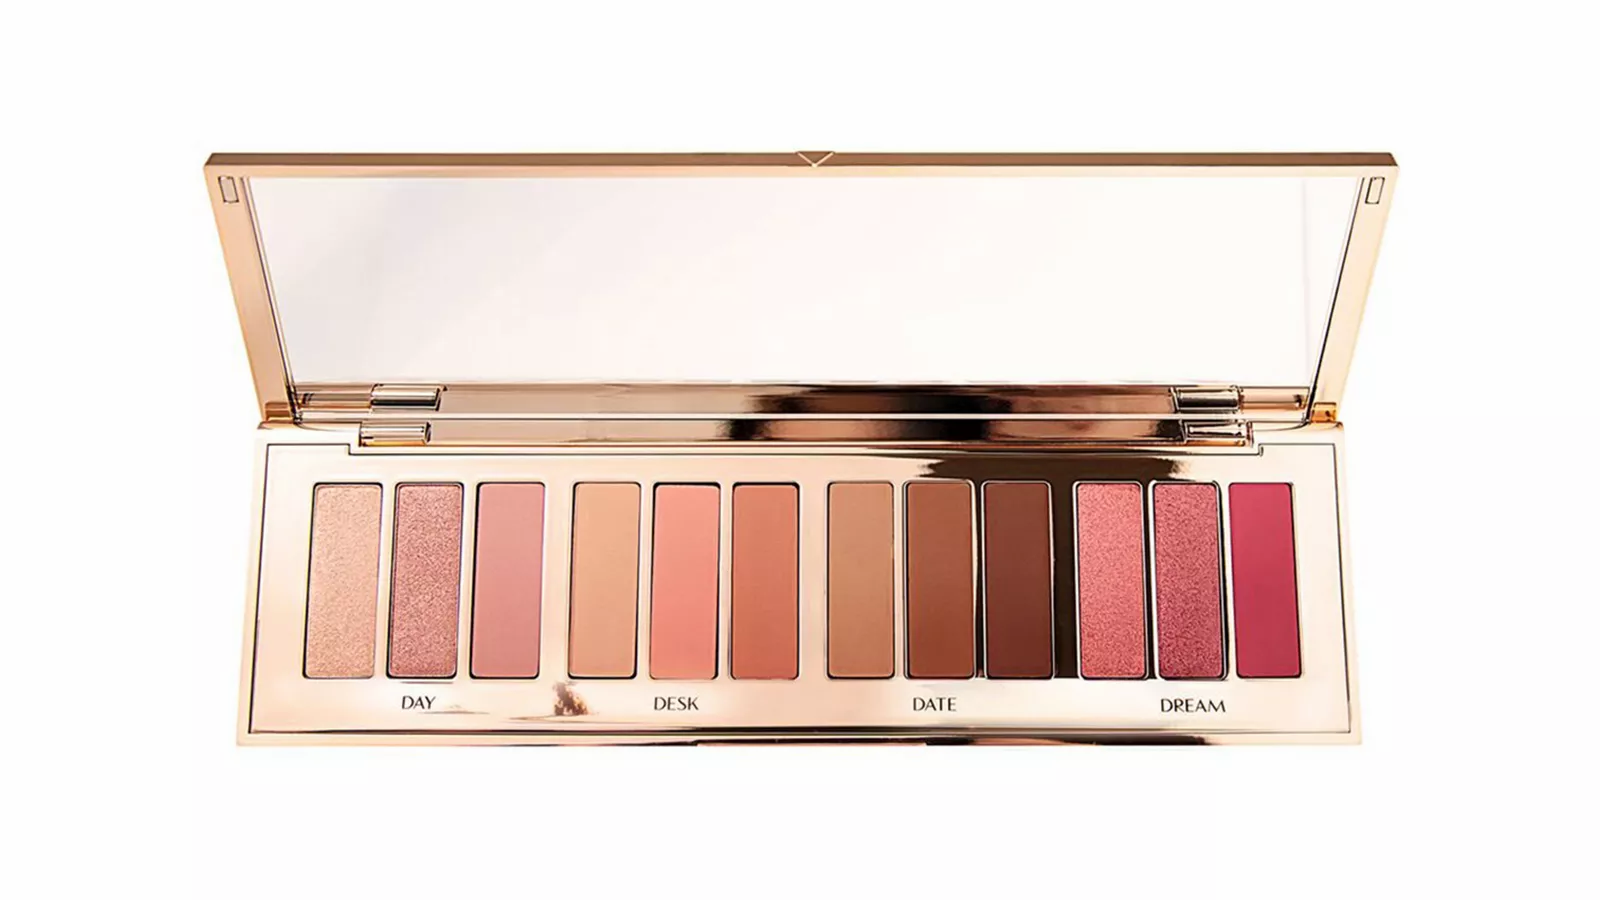 Charlotte Tilbury Pillow Talk Instant Eye Palette review: how does the iconic range hold up in palette form?